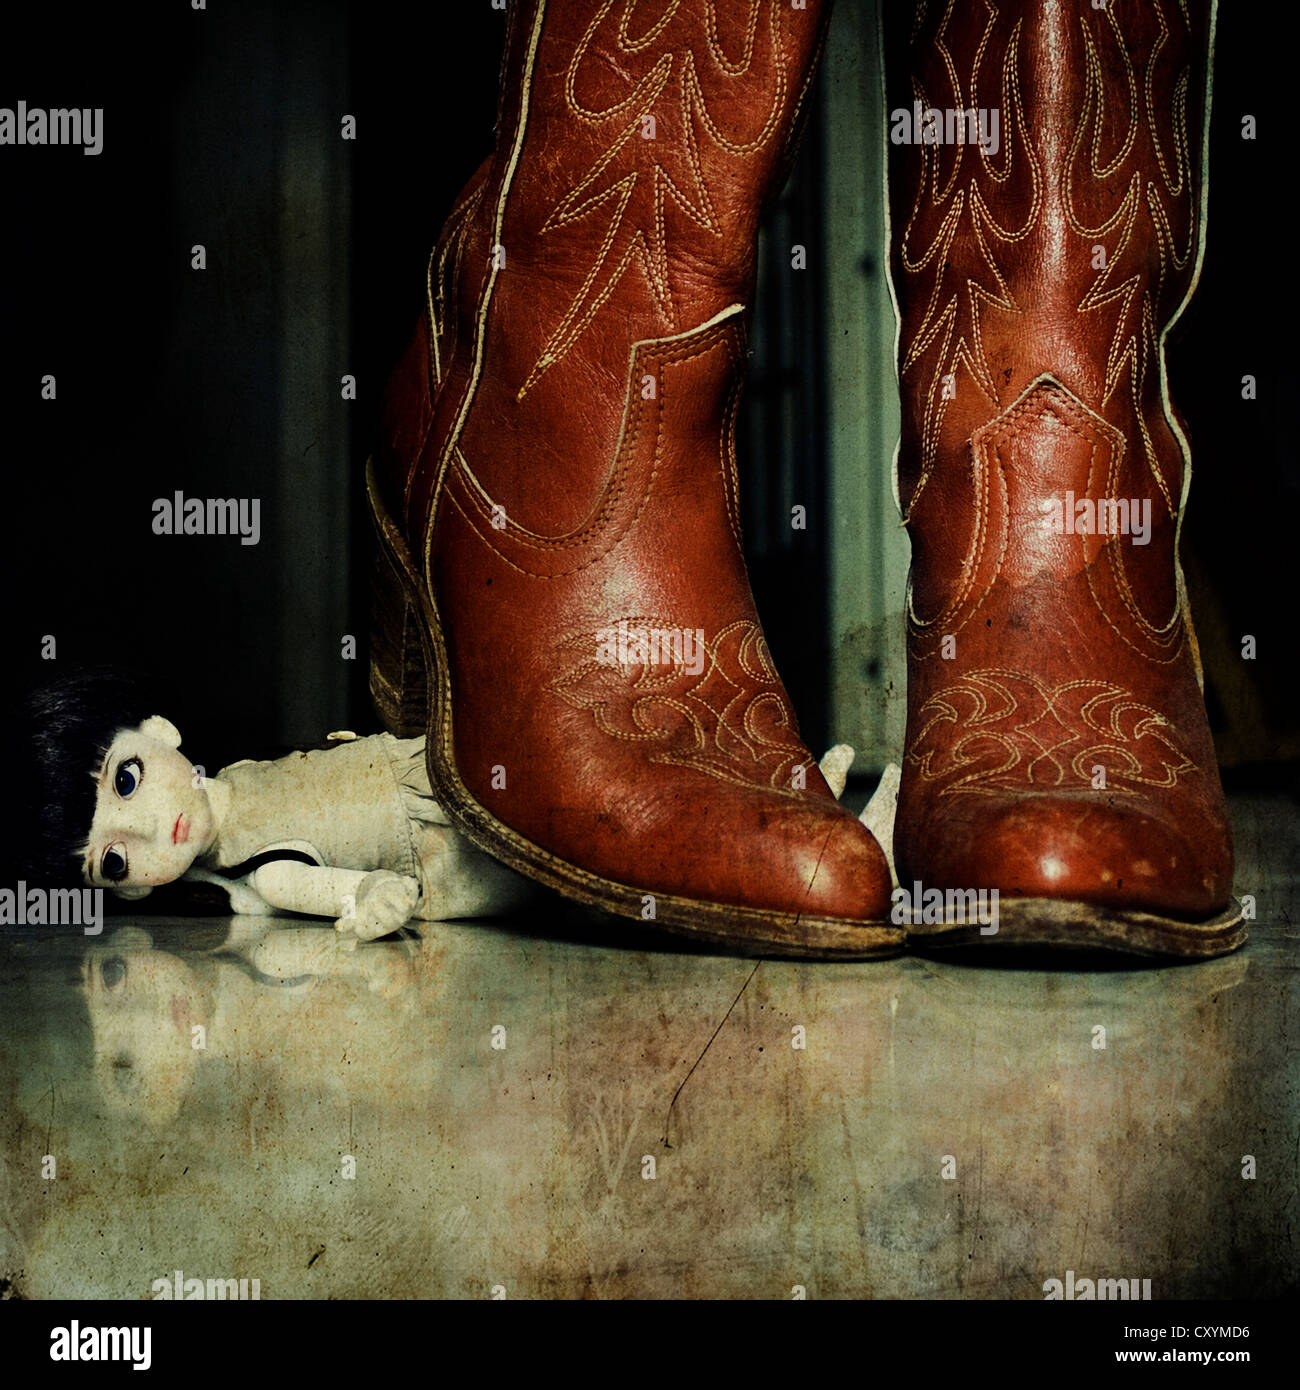 a pair of cowgirl boots over a little doll - Stock Image